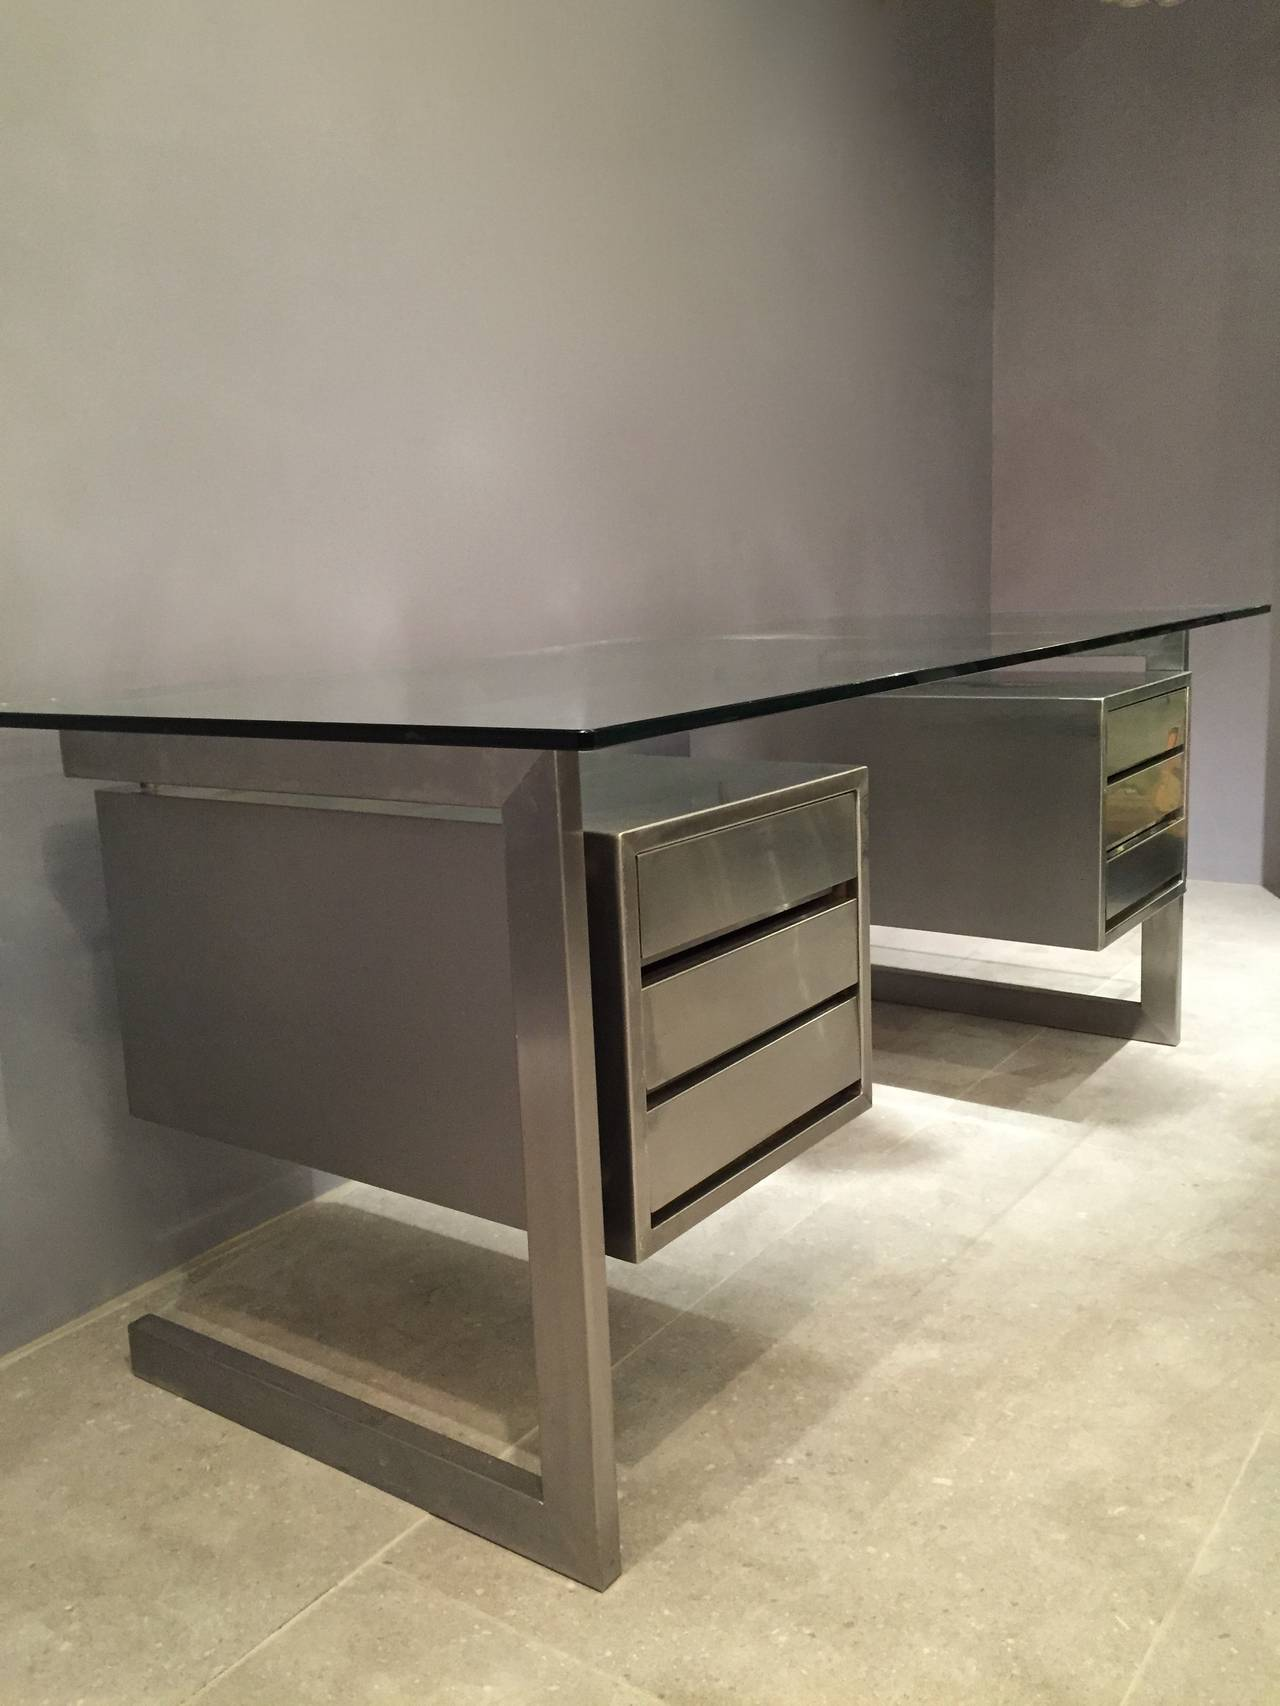 Rare To Find Six Drawers Brushed Stainless Steel Desk In The Style Of Paul Legeard Or